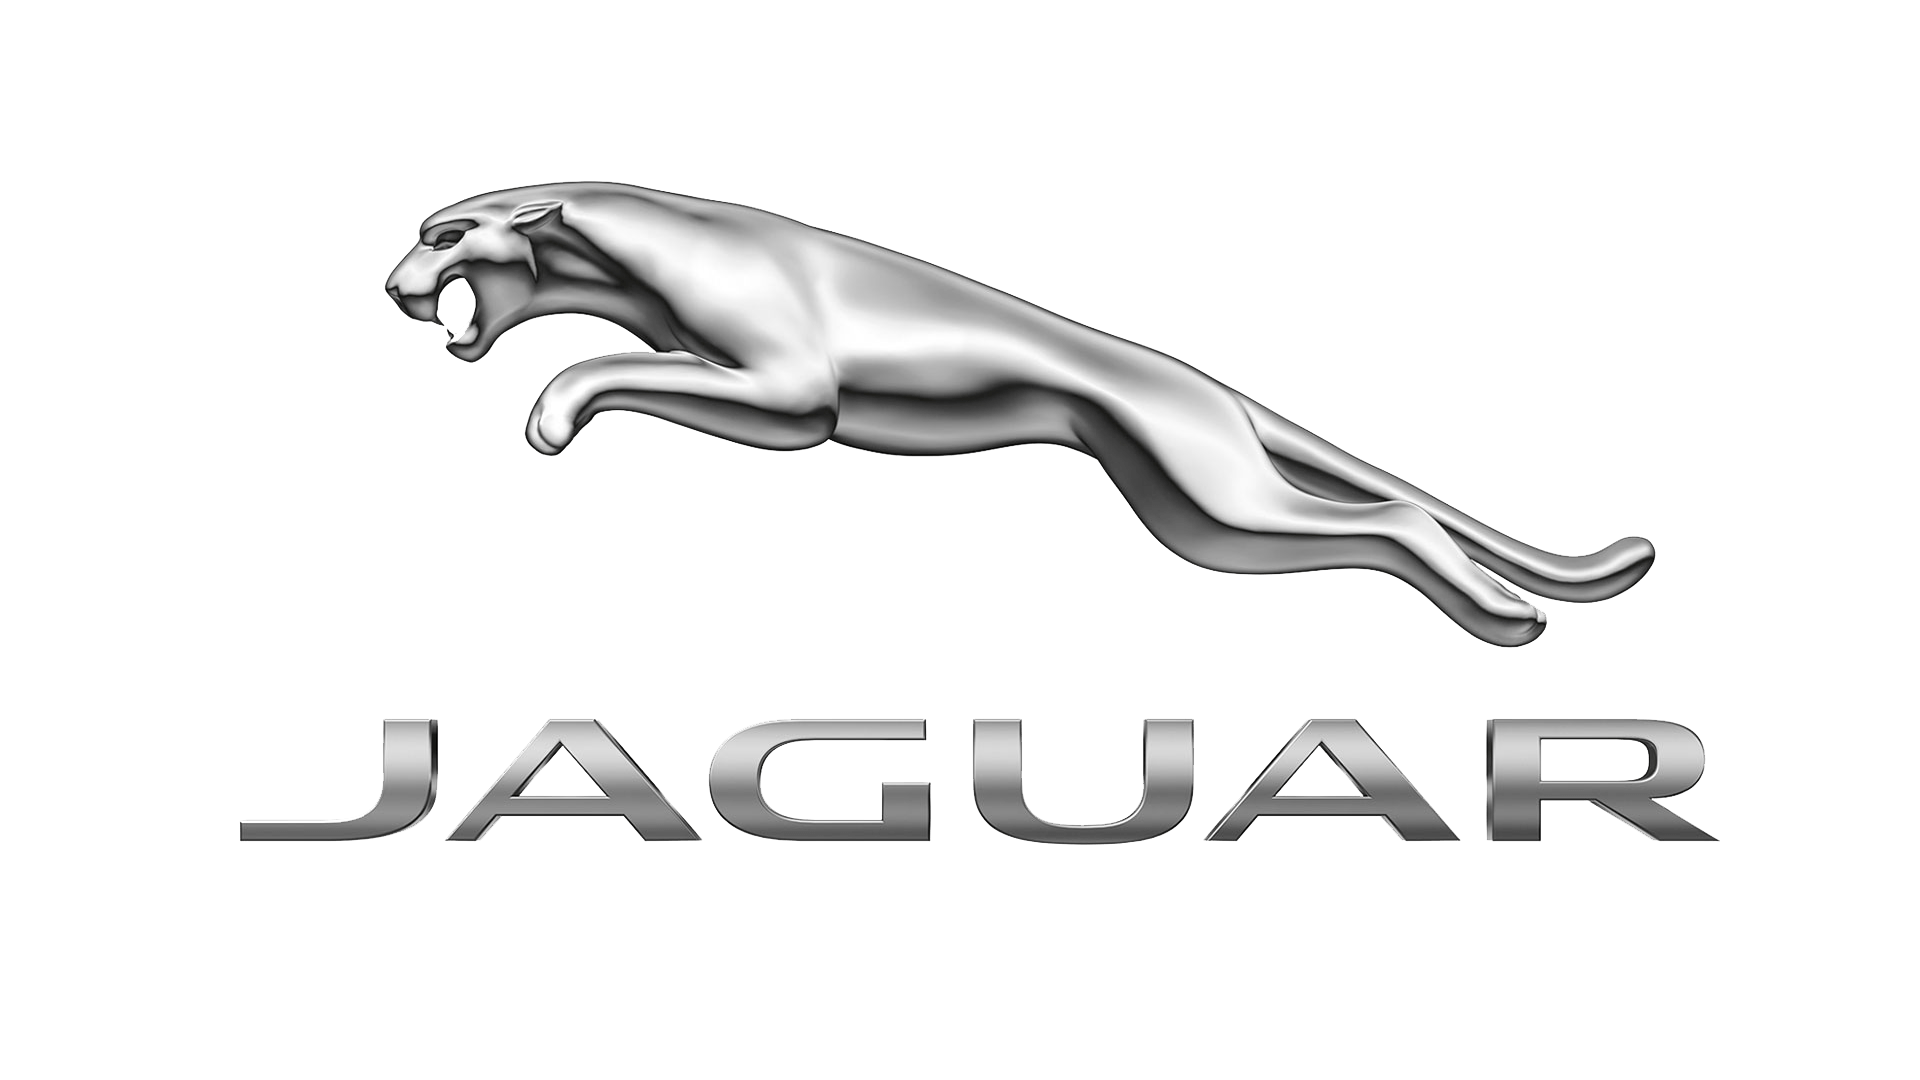 Image result for Jaguar logo transparent background